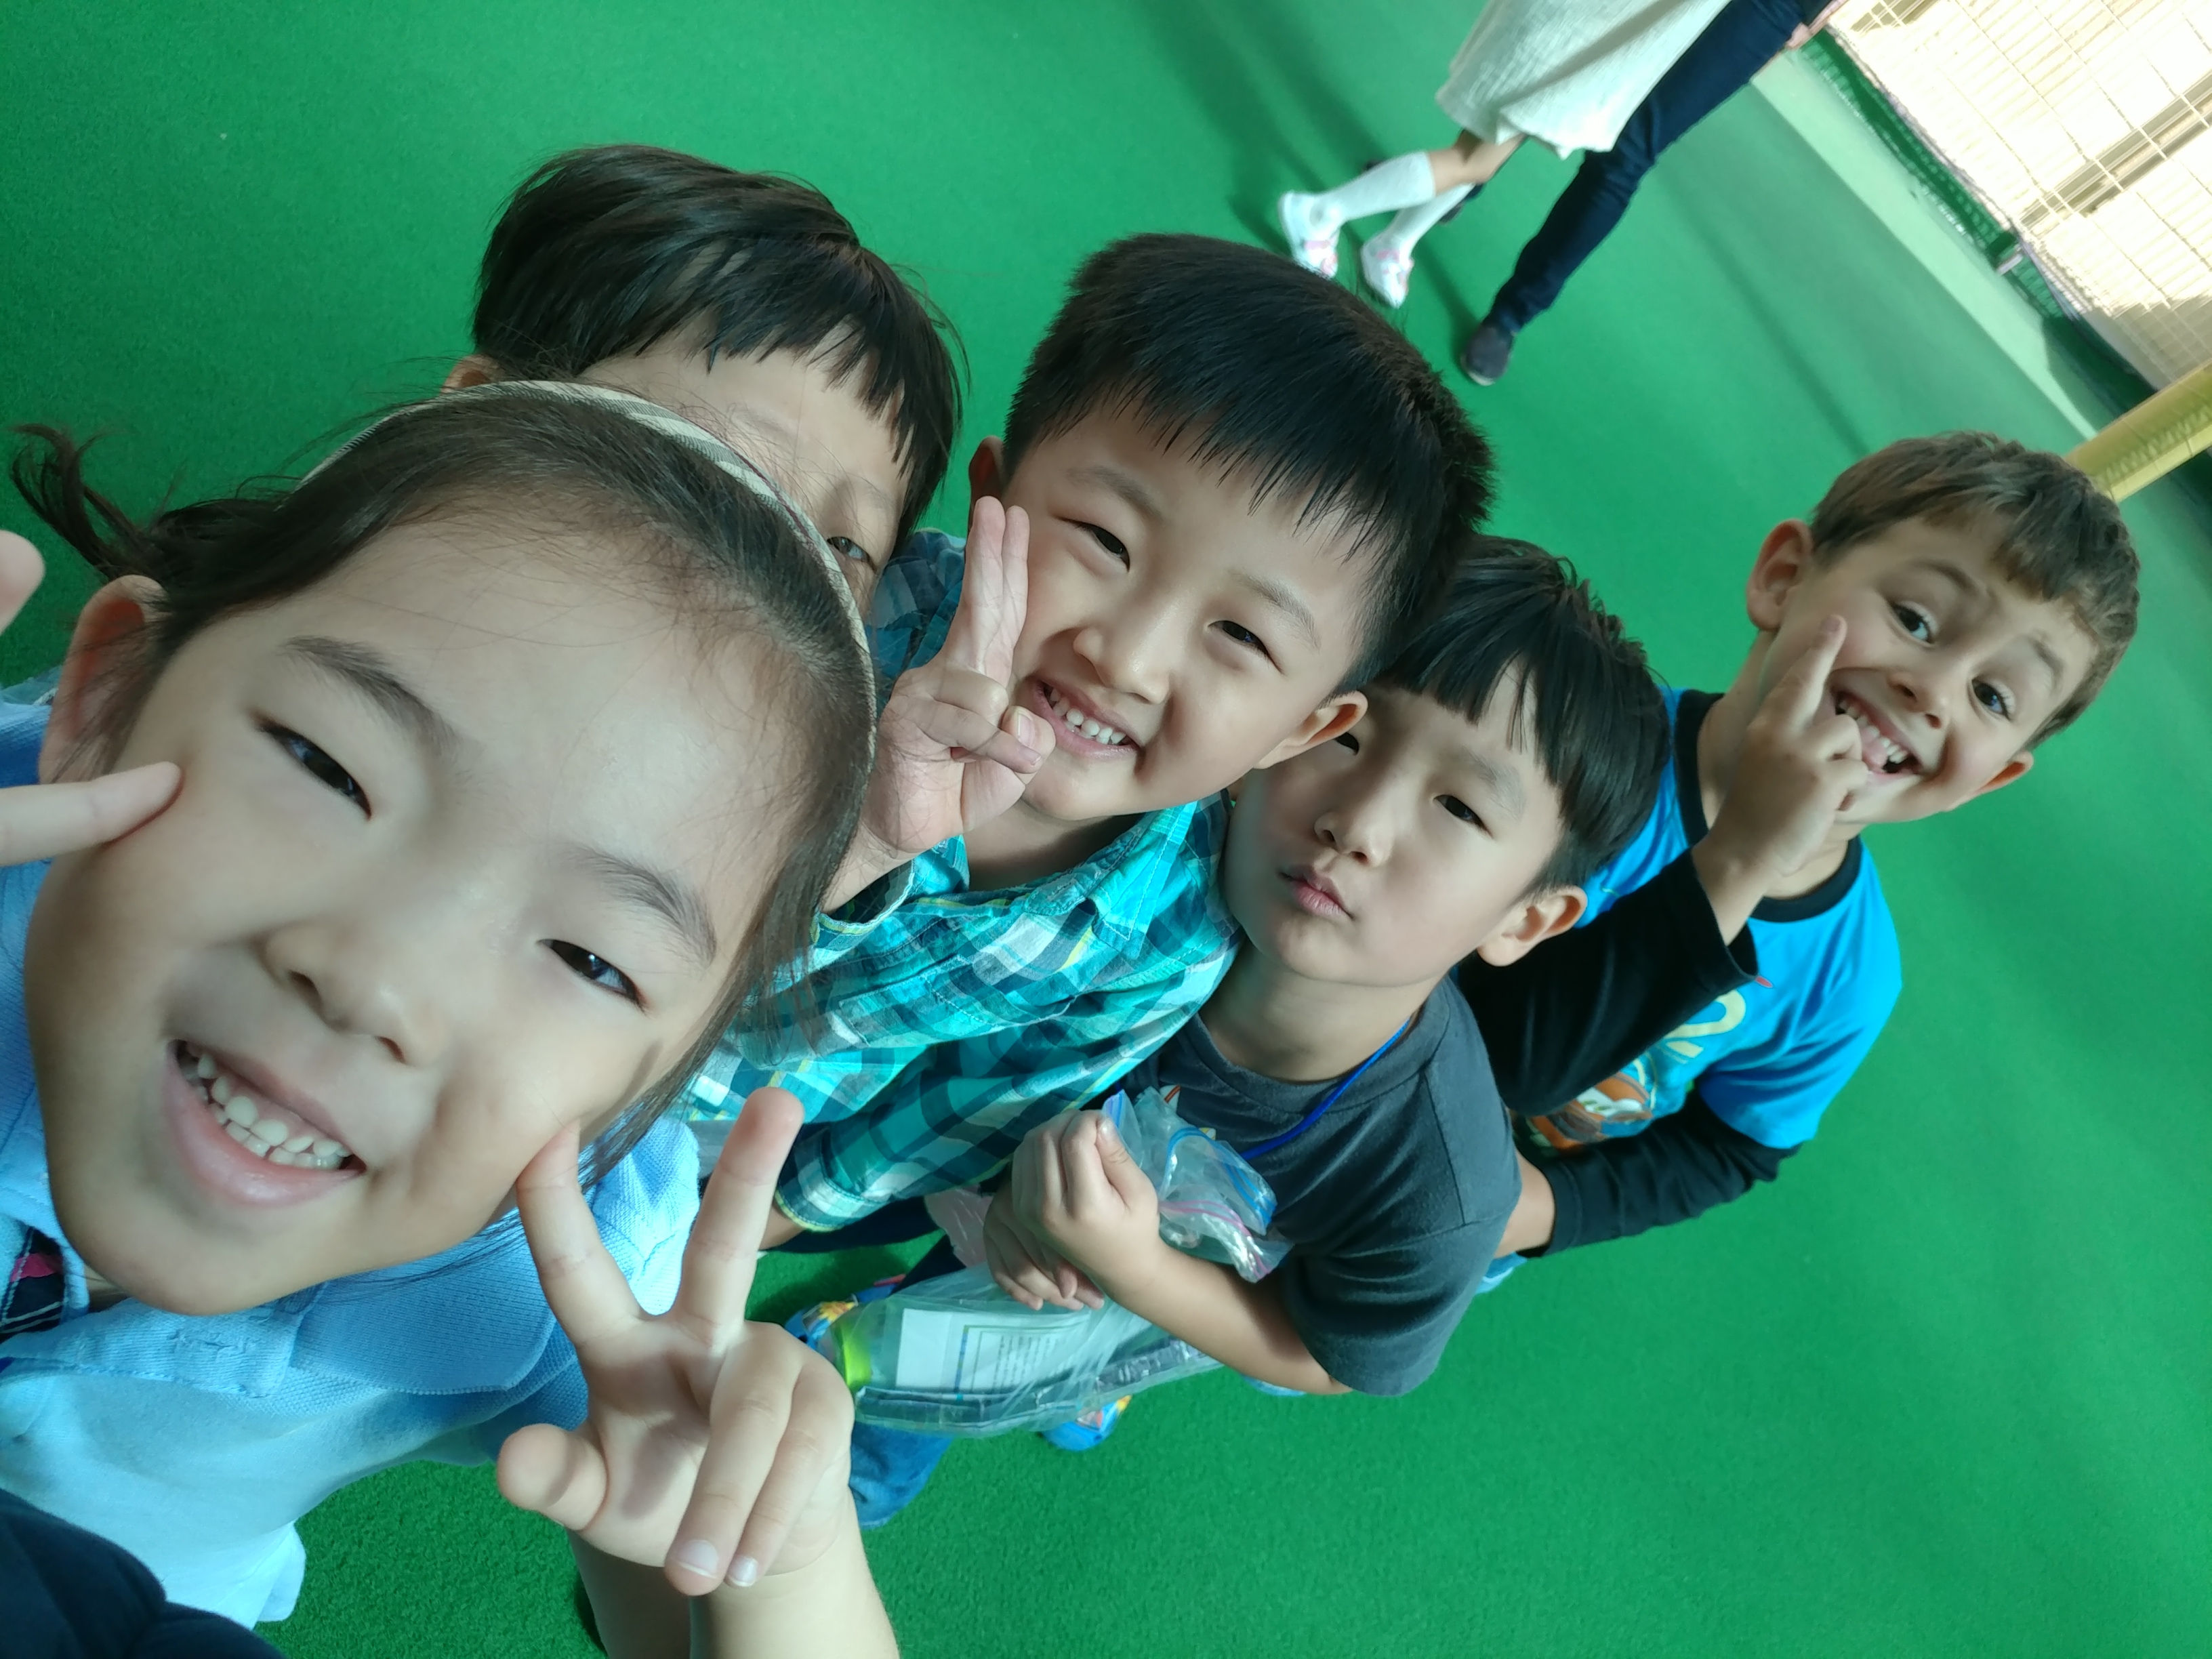 Children having fun on playground